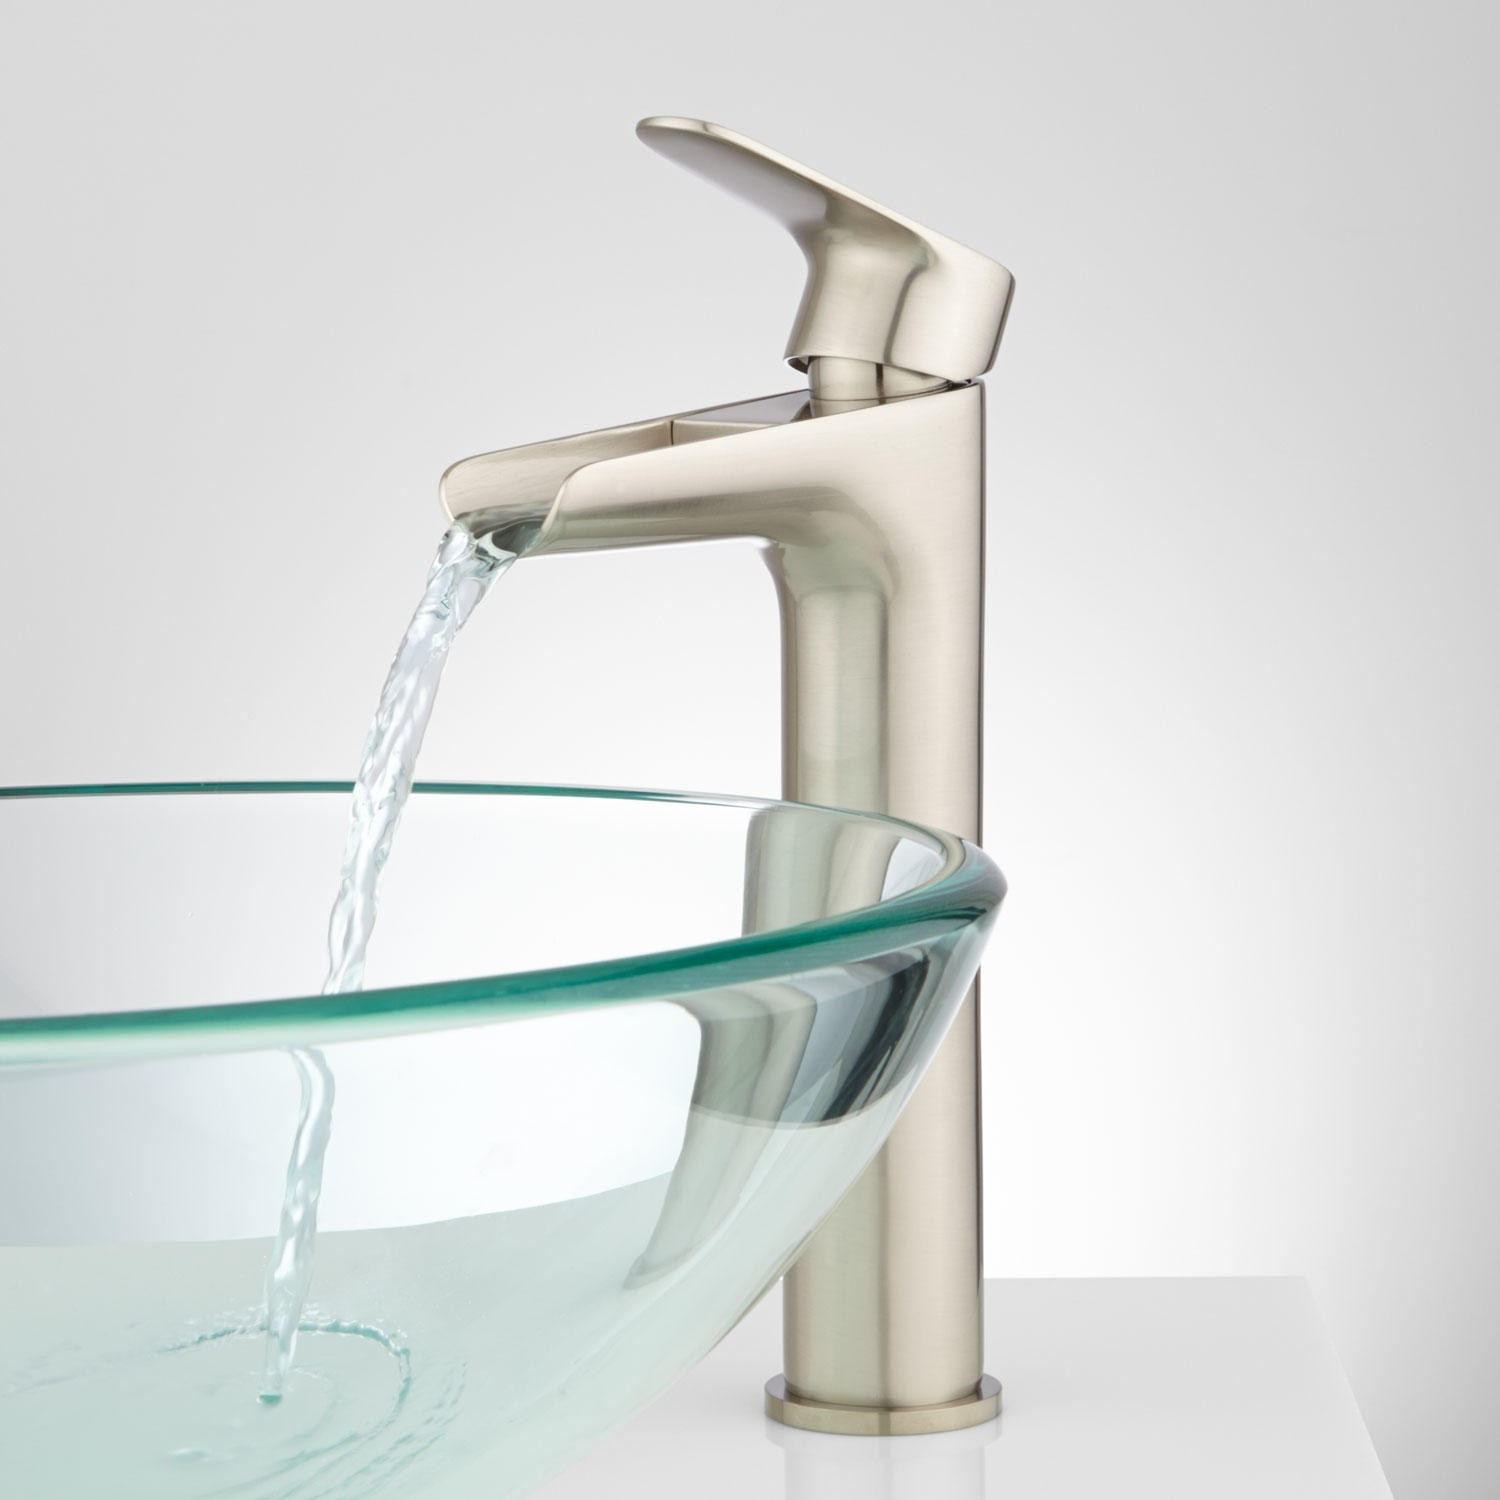 Ideas, pagosa waterfall vessel faucet bathroom with regard to dimensions 1500 x 1500  .